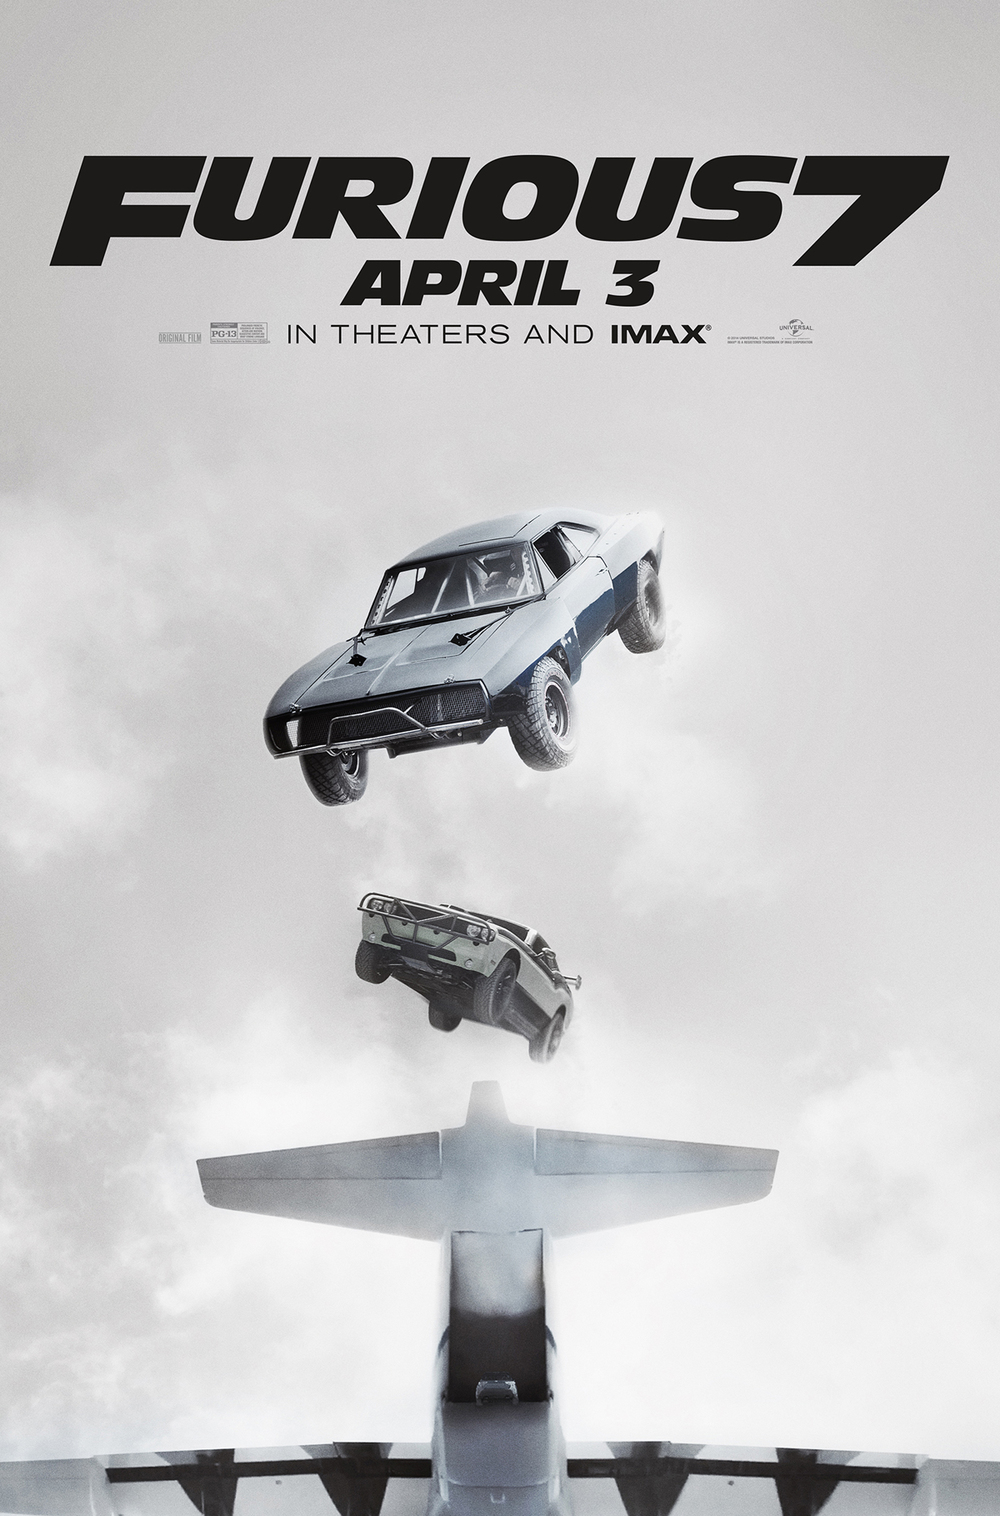 See It Instead: Furious 7